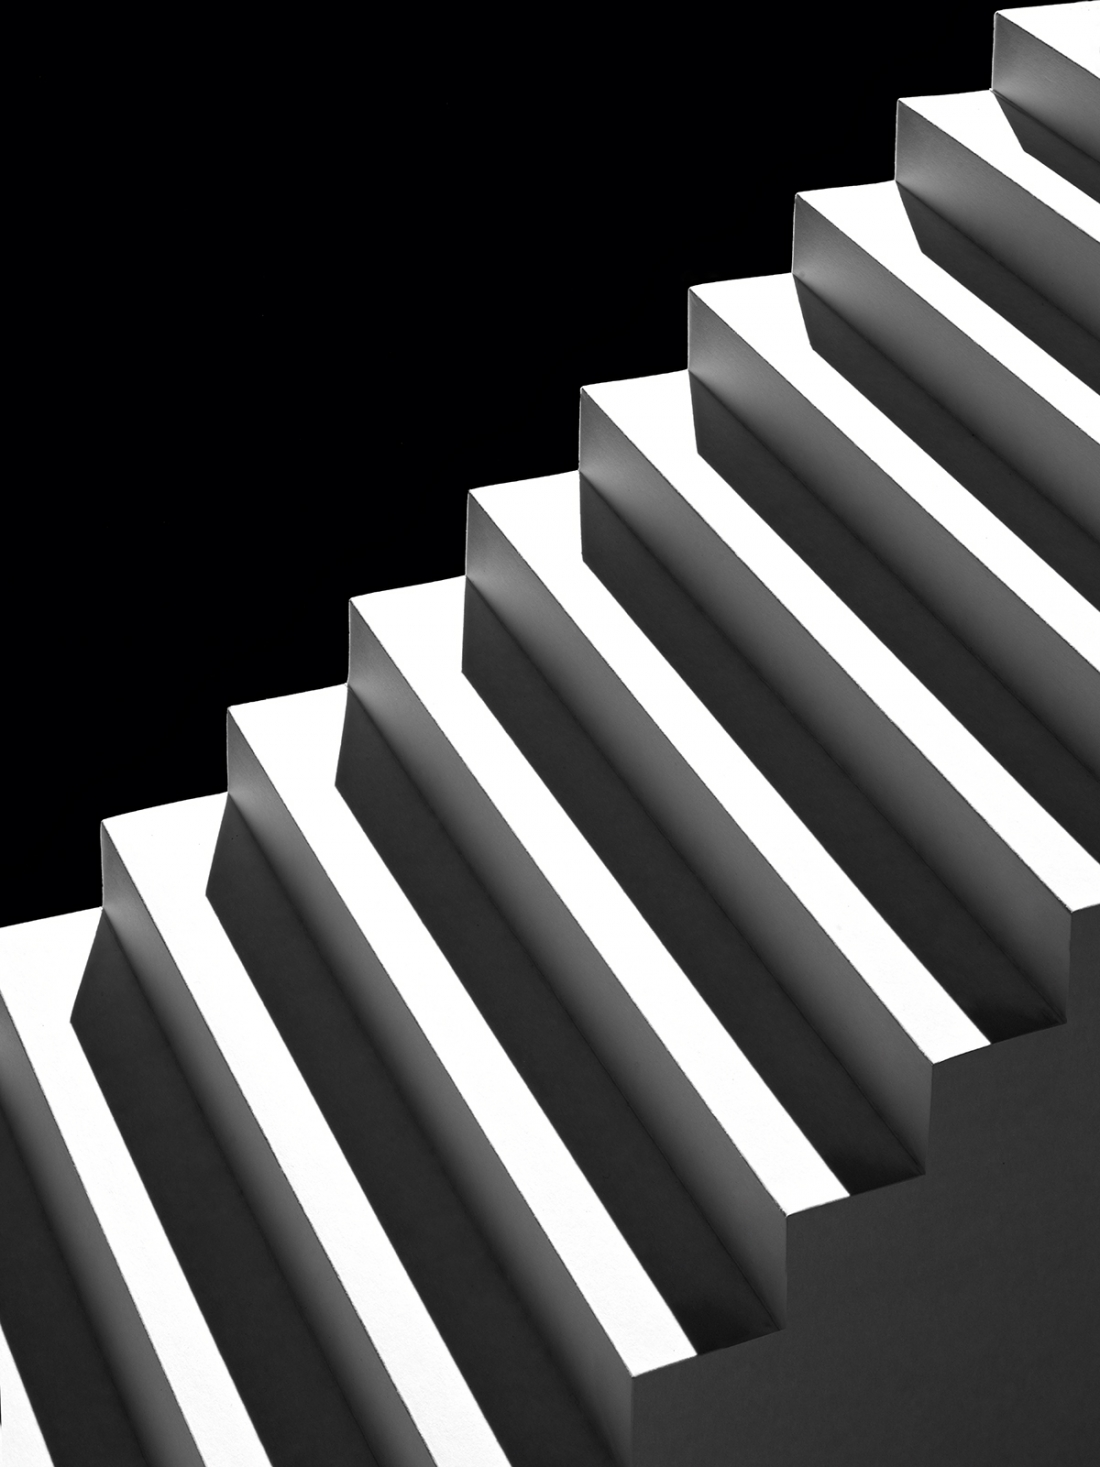 Shadow Spaces Miniature Architecture Crafted From Paper